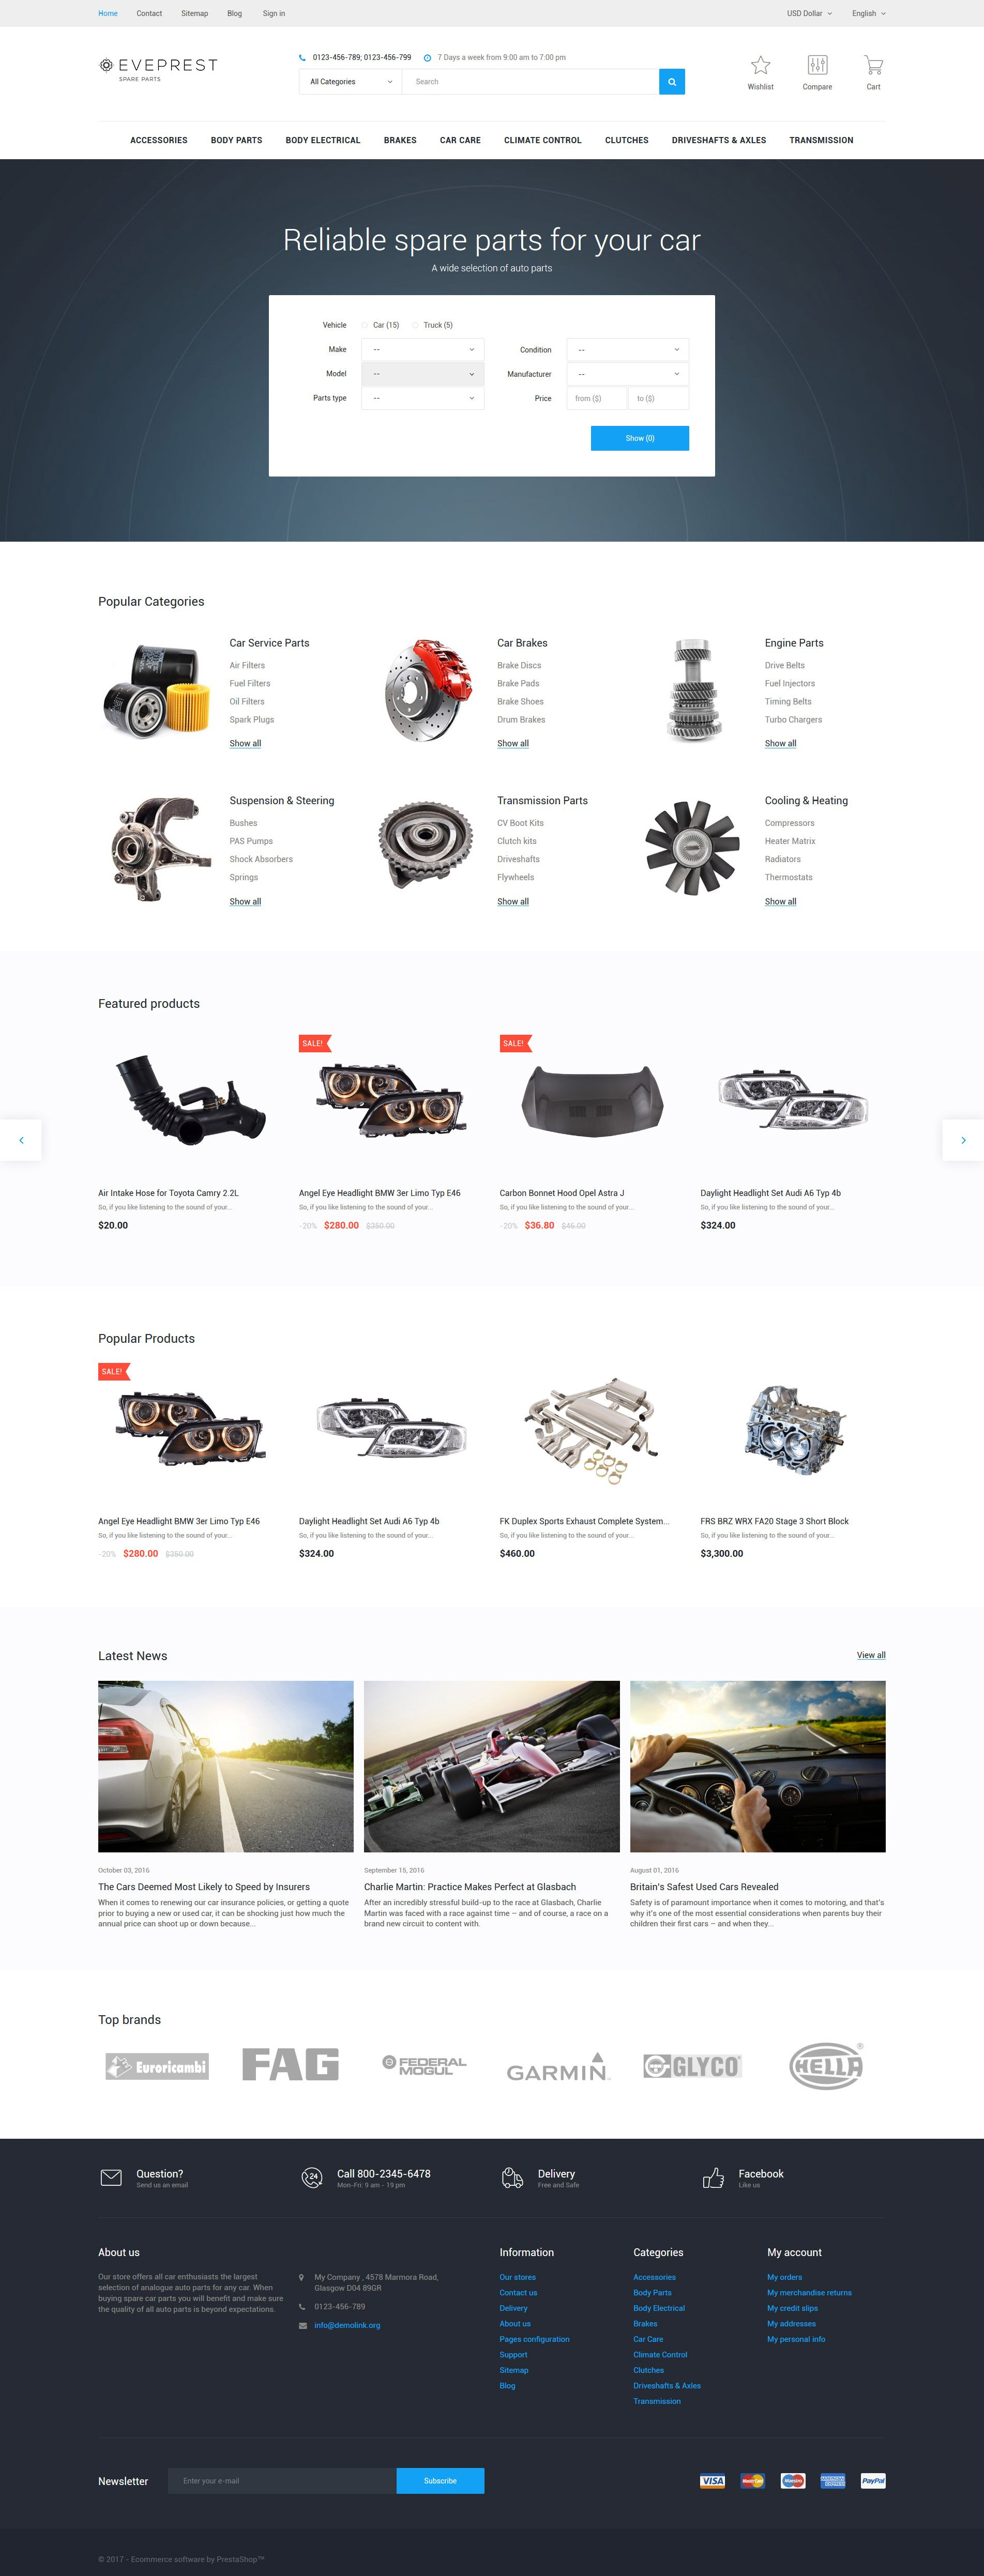 Website Design Template 62342 - parts shop car spares online products air freshener cooling headliners battery accessories dashboard cover lighting bug shield decals racing novelties bulk hose electrical rear deck covers custom fit electronics seat